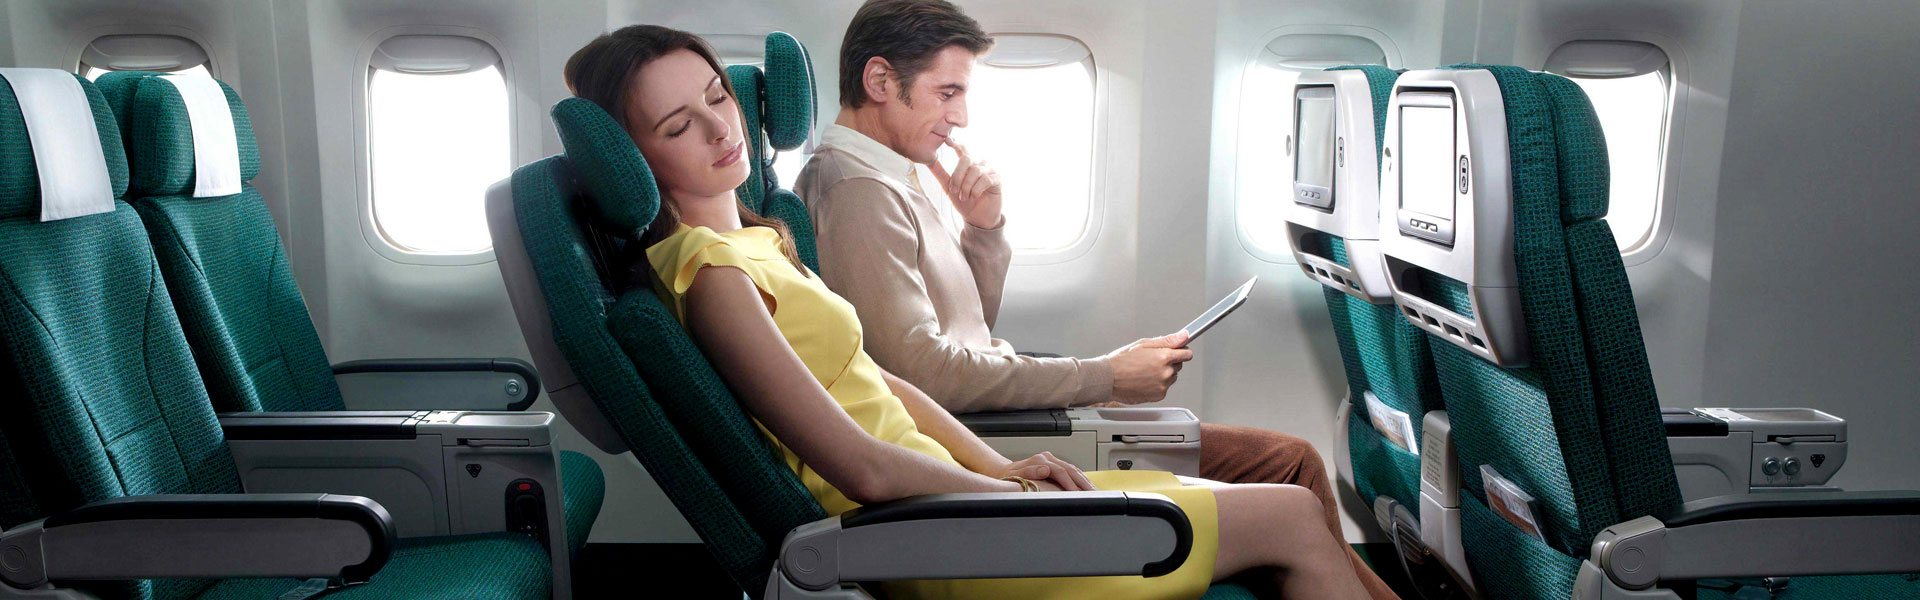 best flight tickets on sale for business user at big discounts